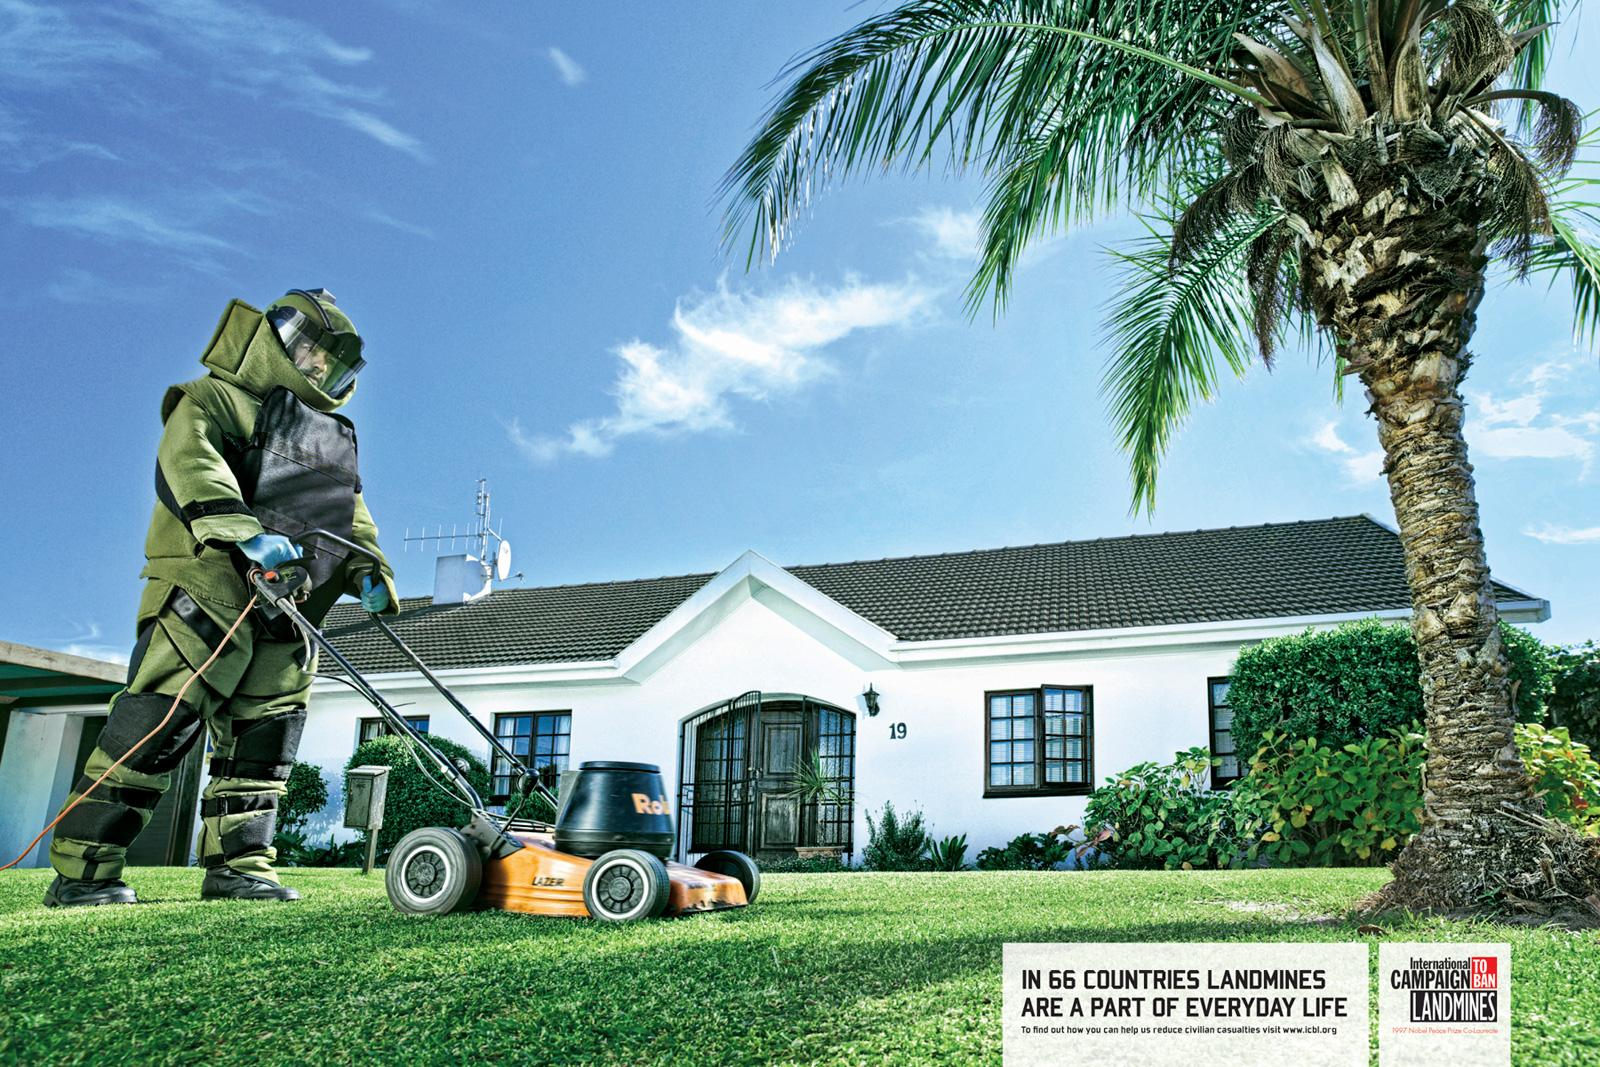 International Campaign to Ban Landmines Print Ad -  Daily Chores, Lawnmower